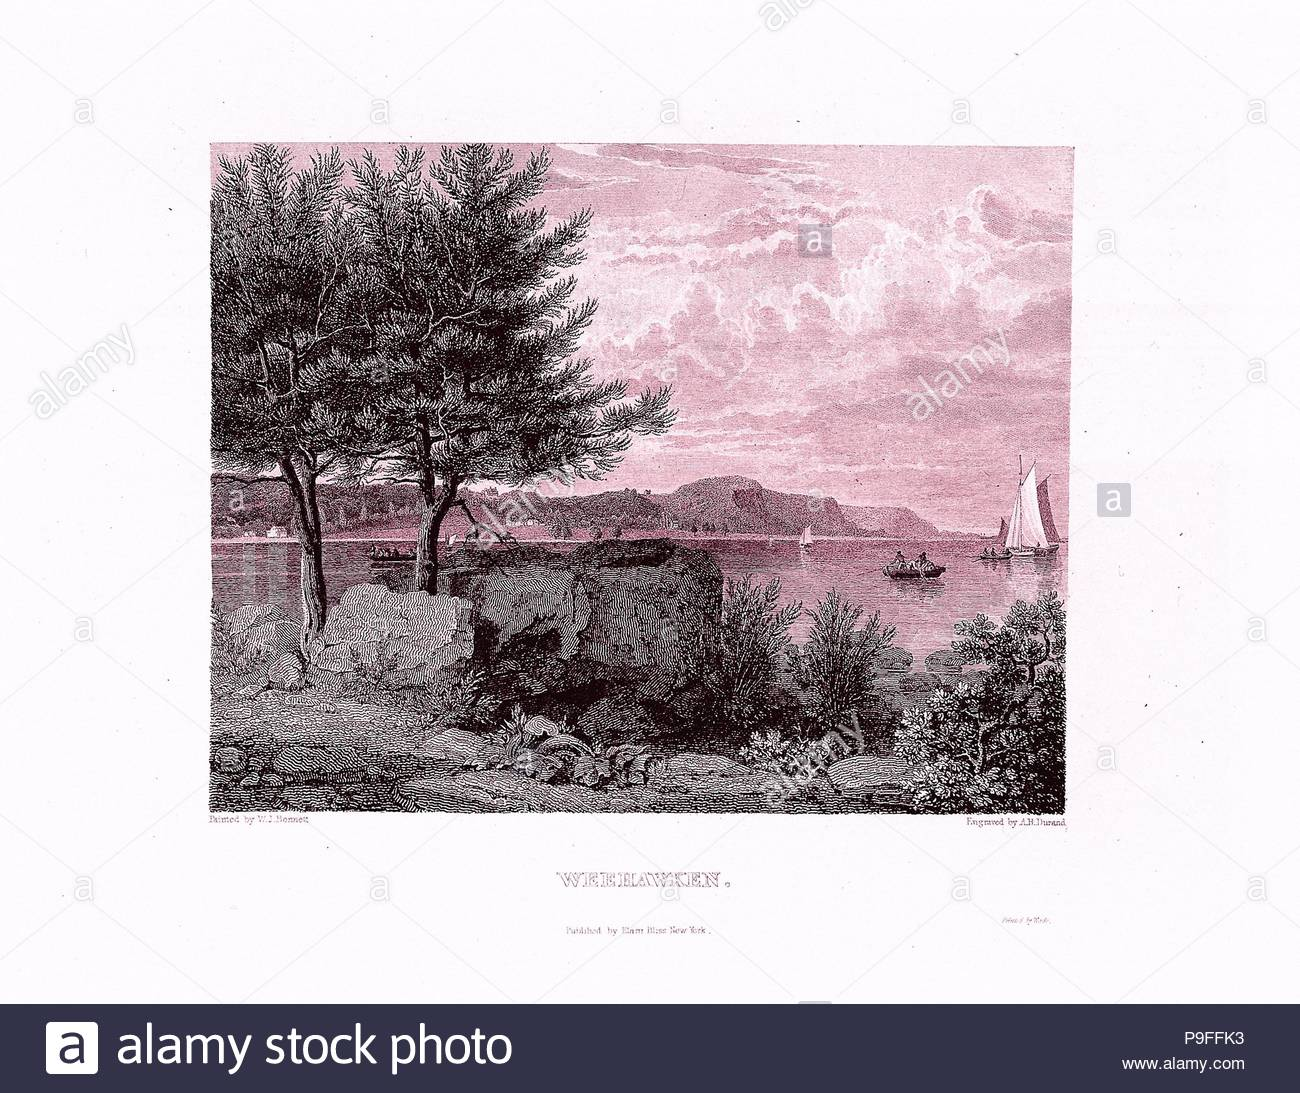 The American Landscape, 1830, Illustrations: engraving, 13 x 10 1/16 in. (33 x 25.5 cm), Books. - Stock Image